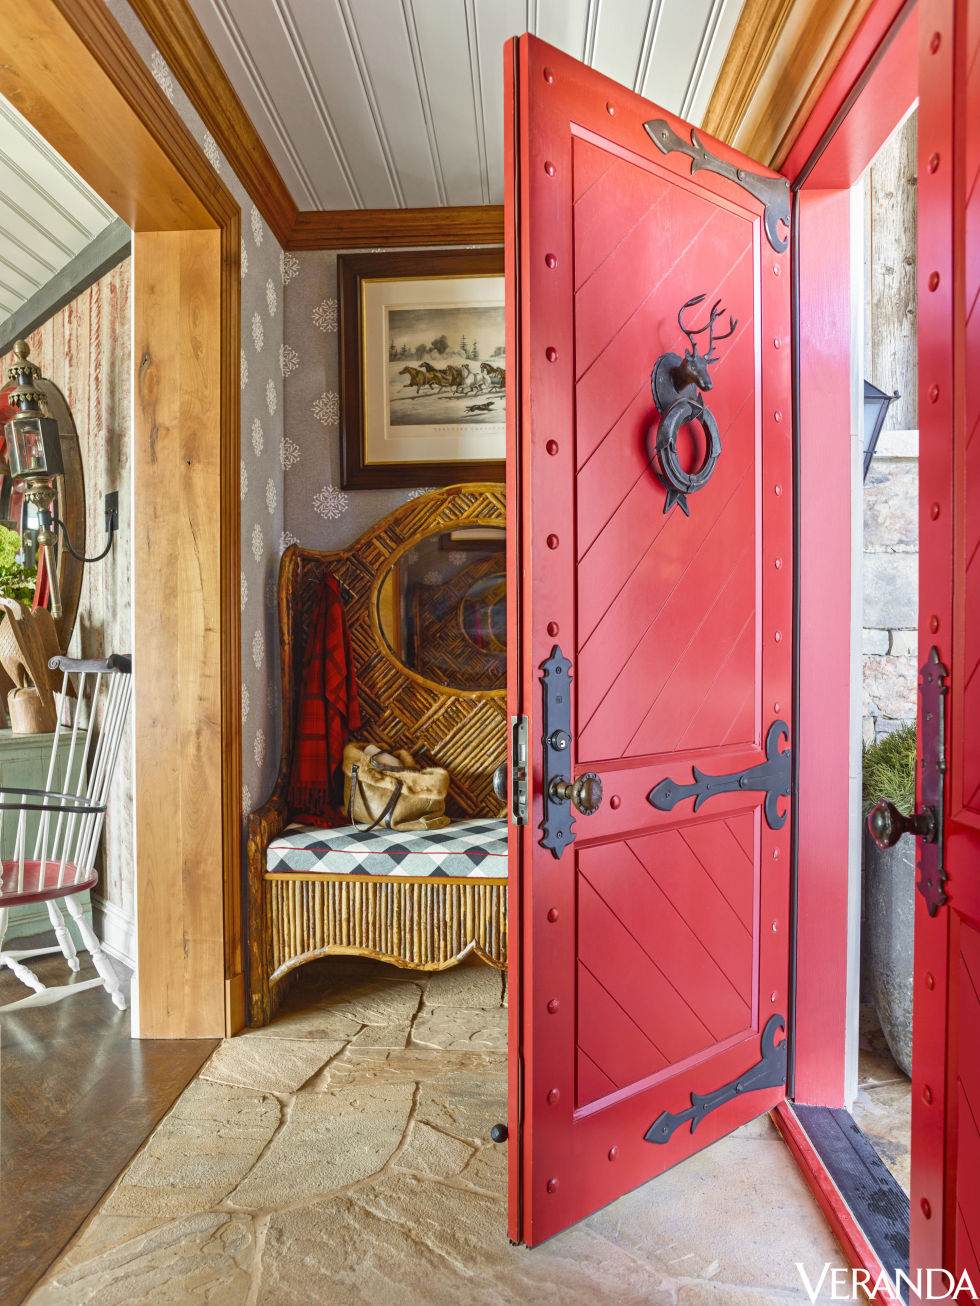 A detailed red door with a stage and wreath knocker sets the stage. This is NOT your typical sterile modern mega ski house. & Mad for Plaid Holiday Ski House u2014 The Foo Dog Blog pezcame.com